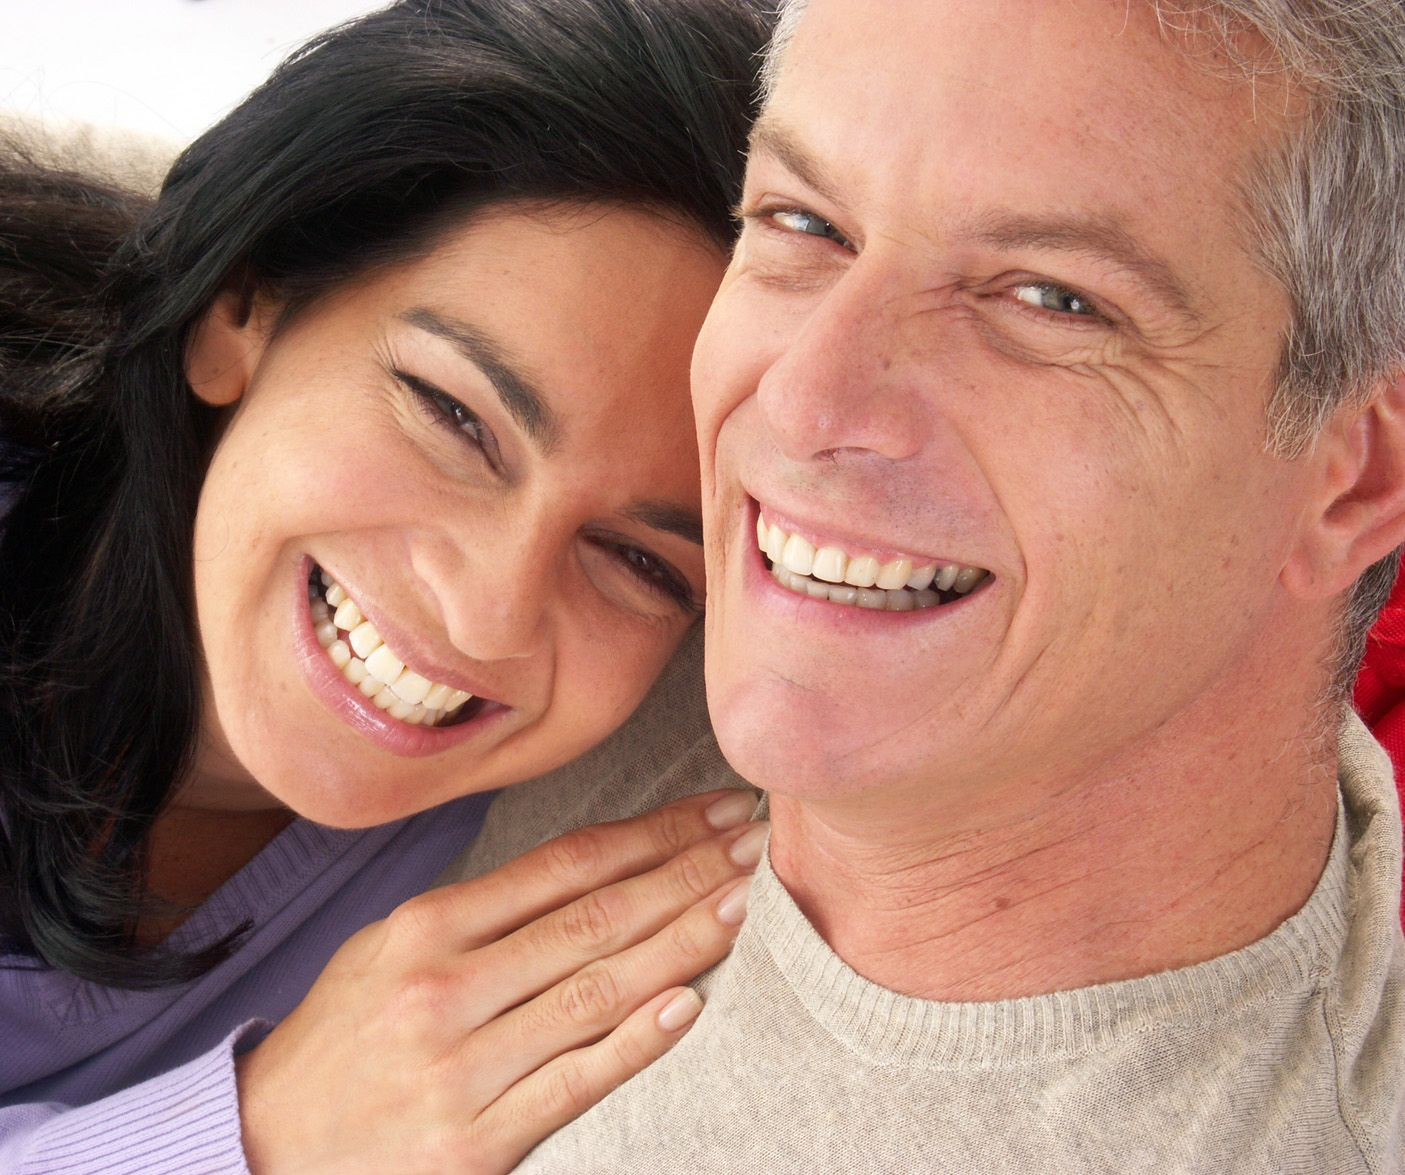 Tooth extractions - father and daughter team